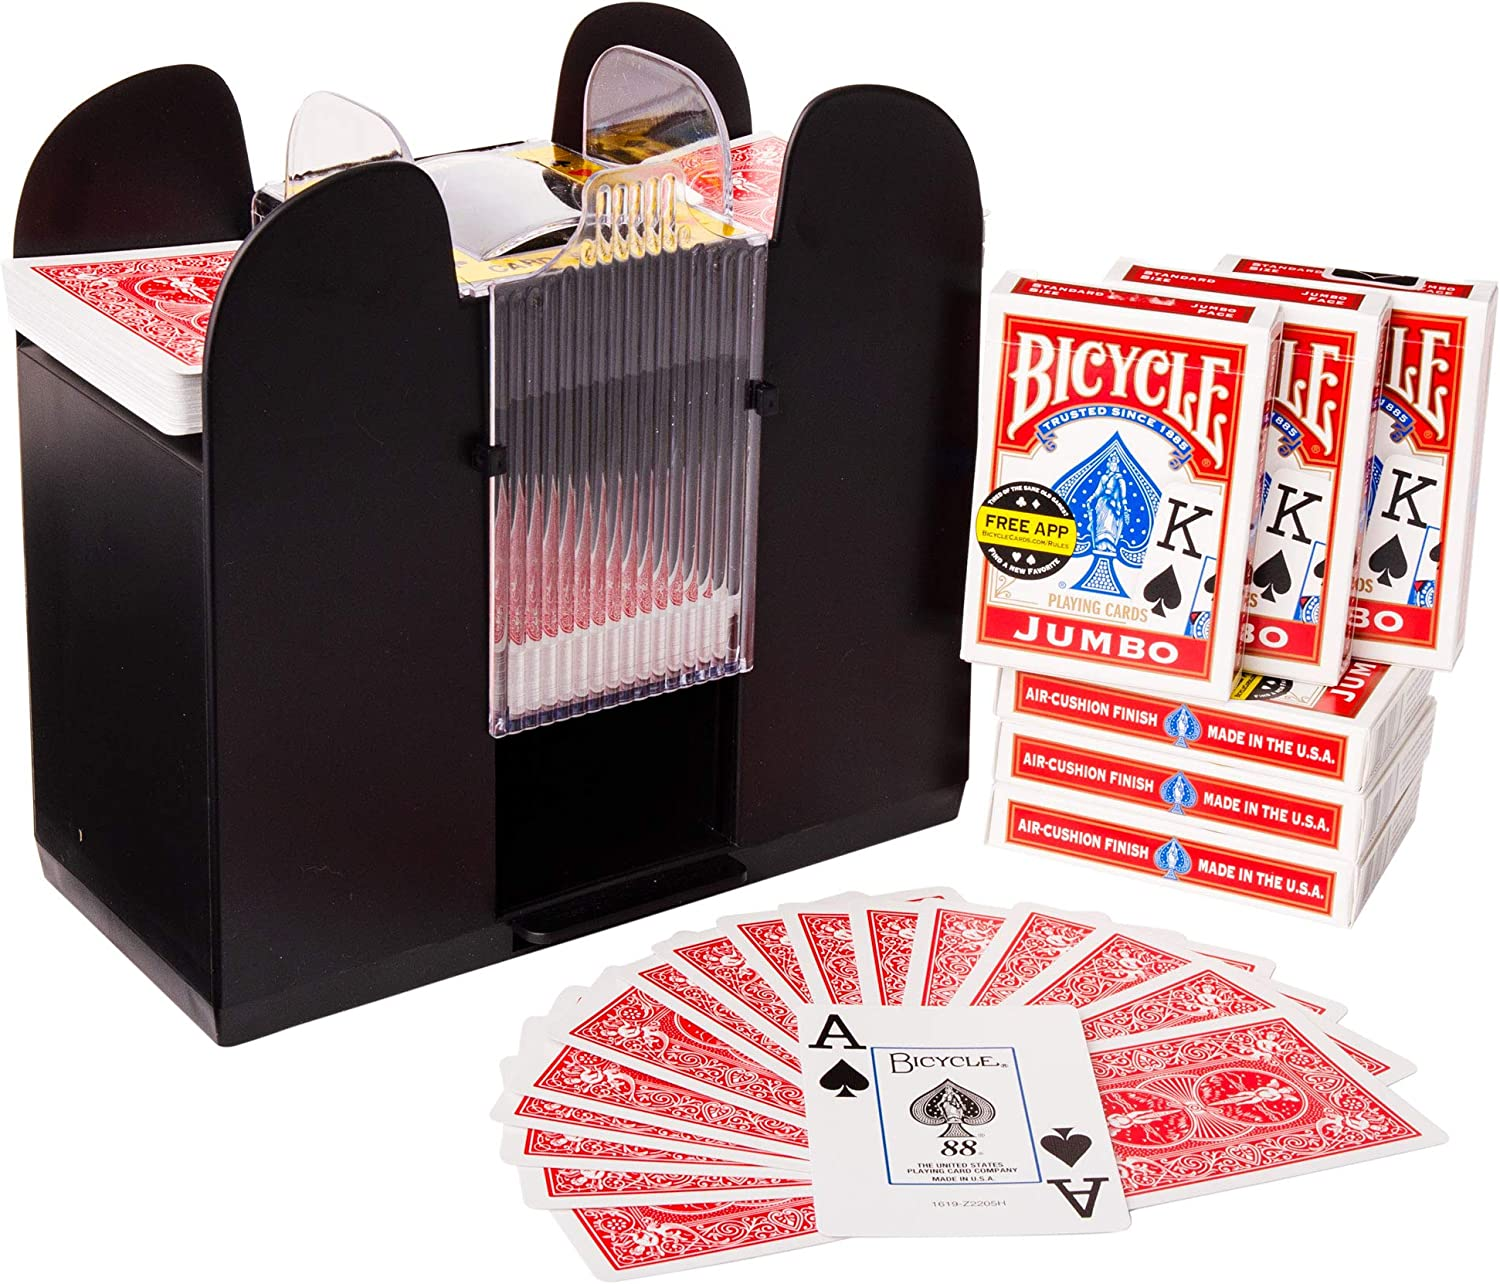 Classic Poker Brybelly 6-Deck Shuffler and 6 Jumbo Index Bicycle Decks /& Trading Card Games Battery-Operated Electric Shuffle Machine with Cards of Your Choice Home /& Casino Tournaments